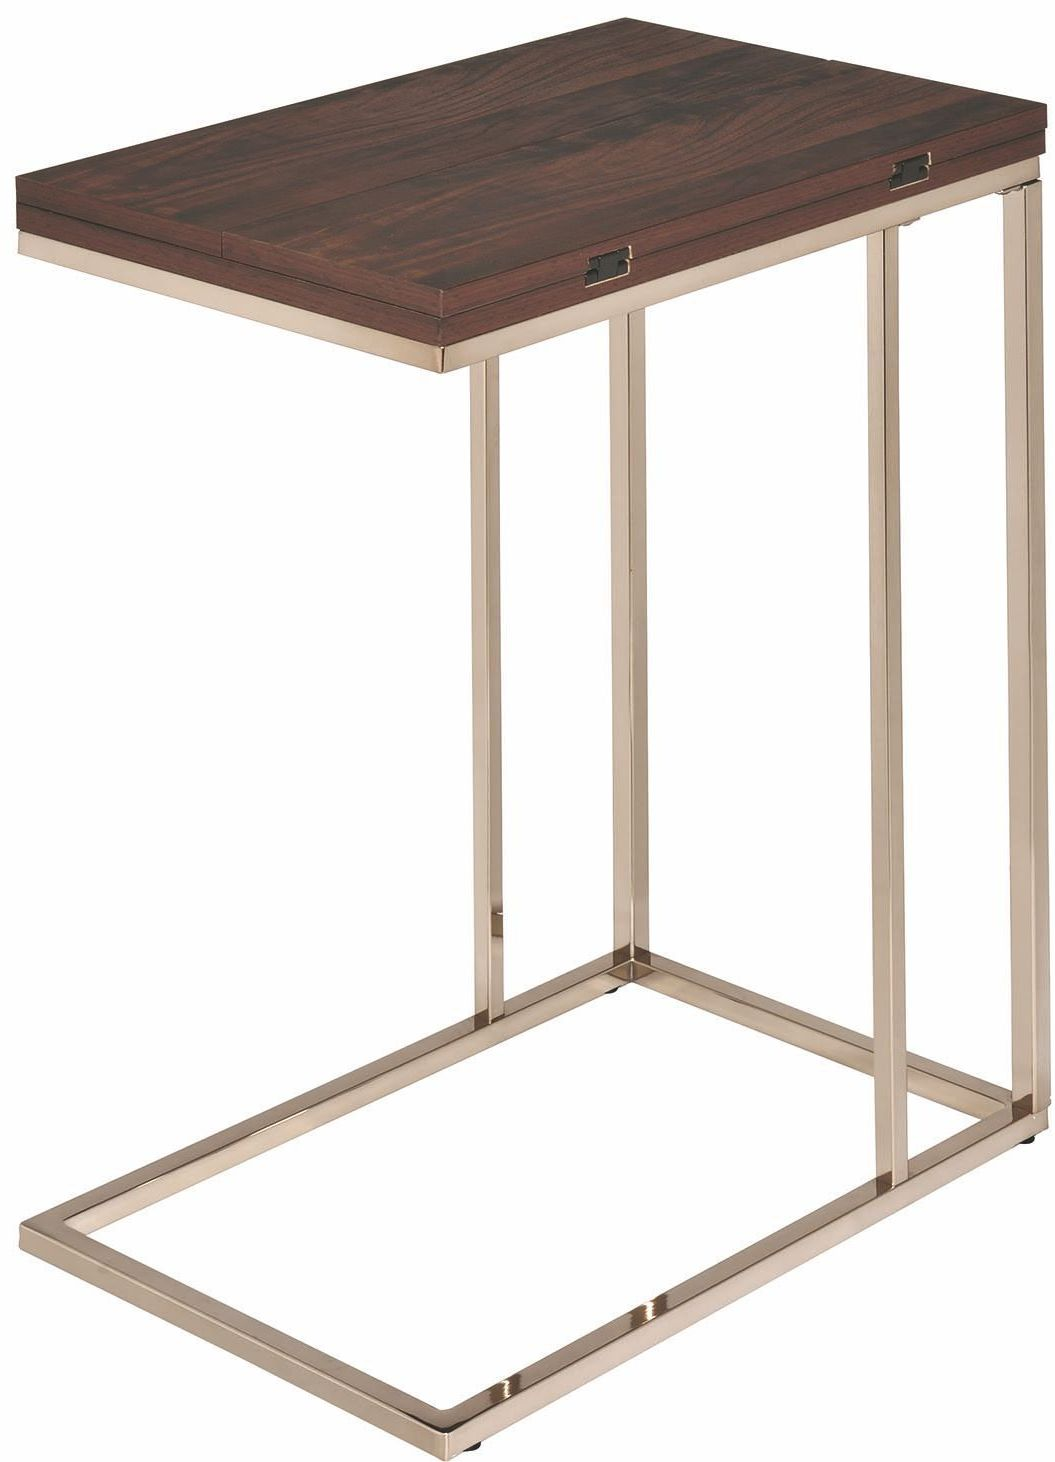 chestnut accent table tables occasional and modern lamp designs ethan allen windsor chairs ikea kids room storage cherry wood dining furniture jcp shower curtains home goods small